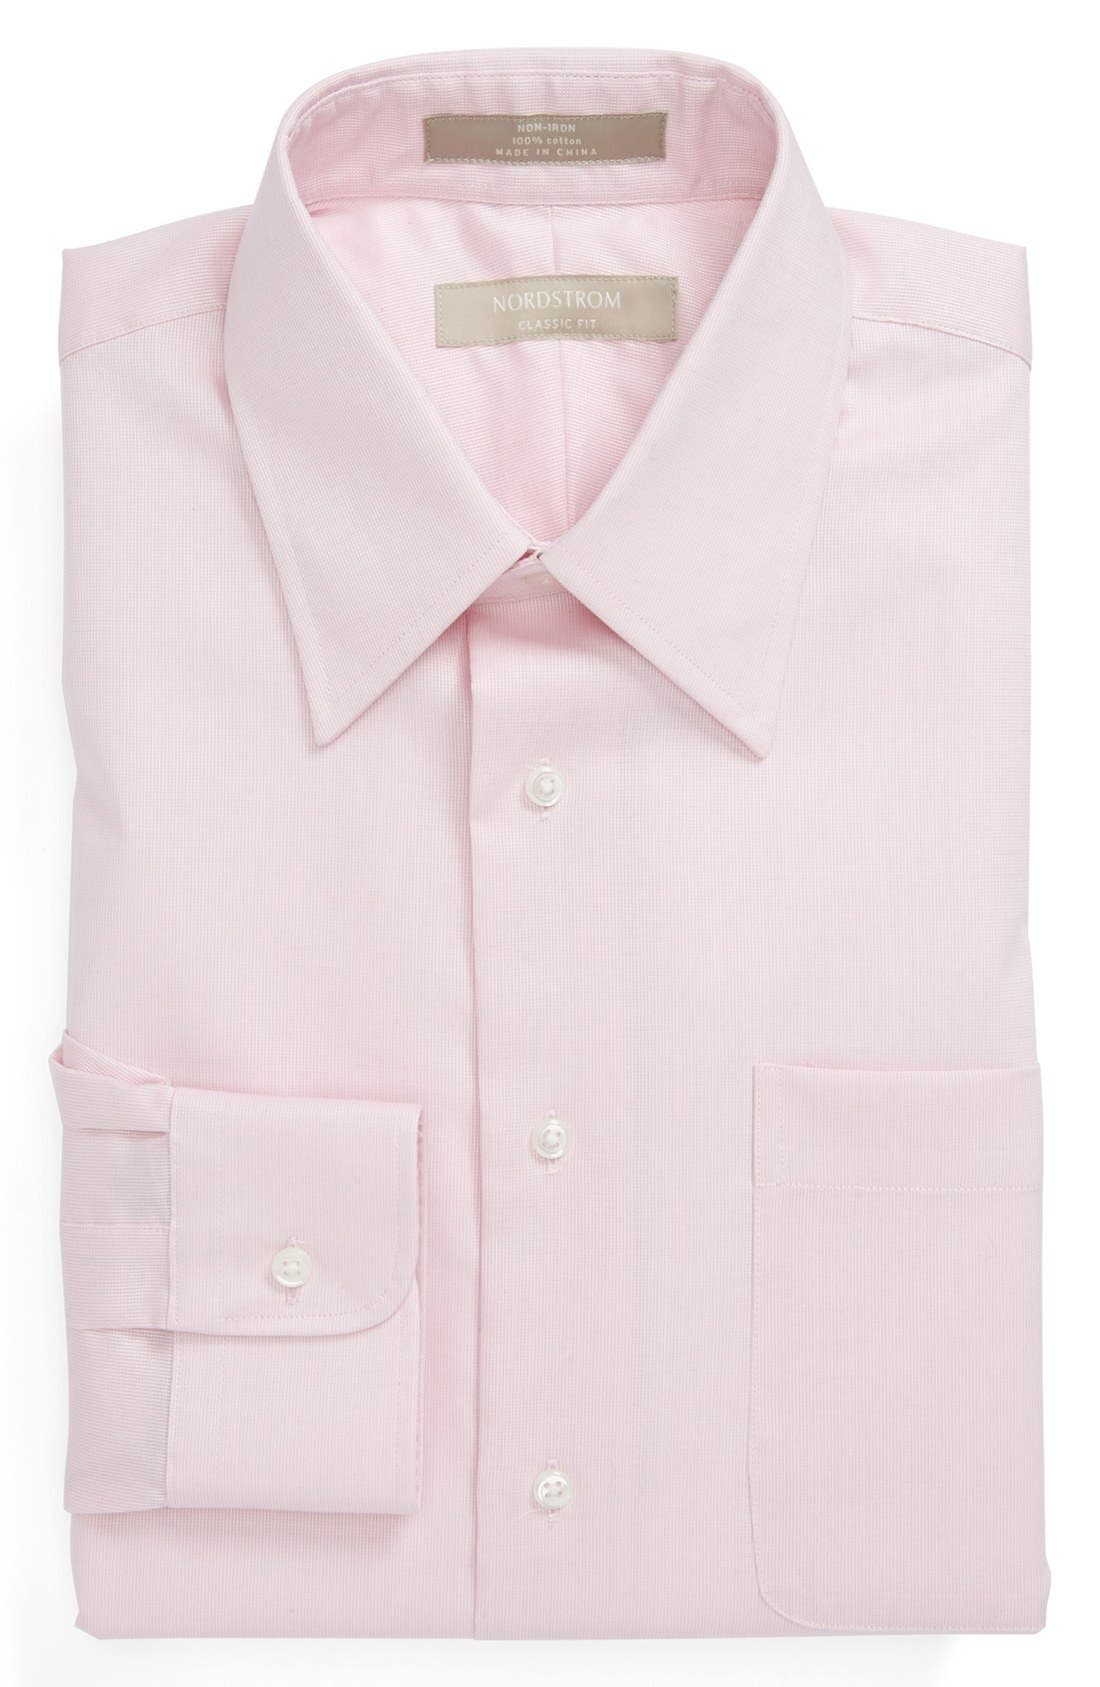 Alternate Image 1 Selected - Nordstrom Classic Fit Non-Iron Dress Shirt (Online Only)